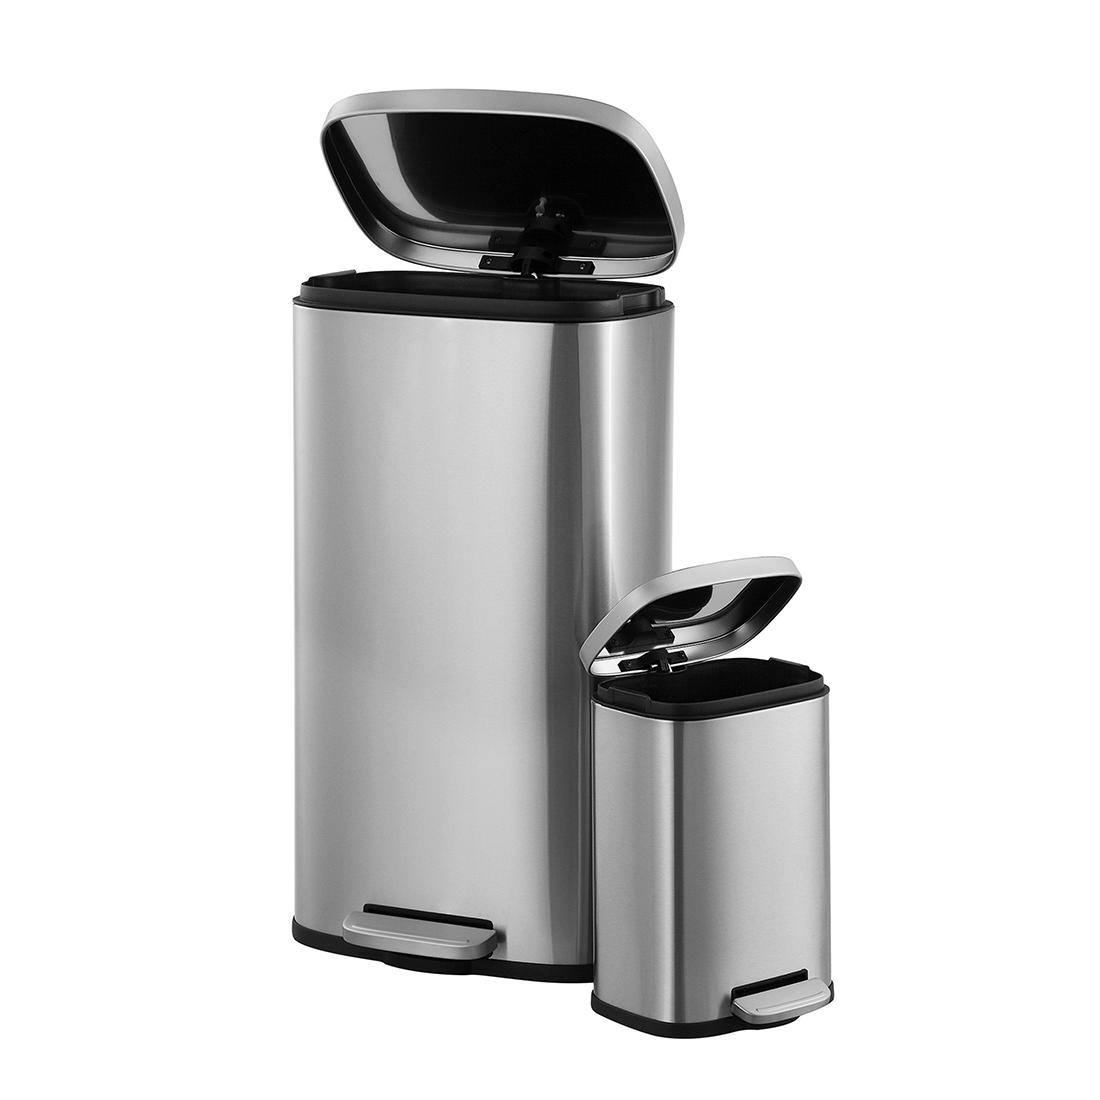 Neu Home Stainless Steel Trash Cans 30l